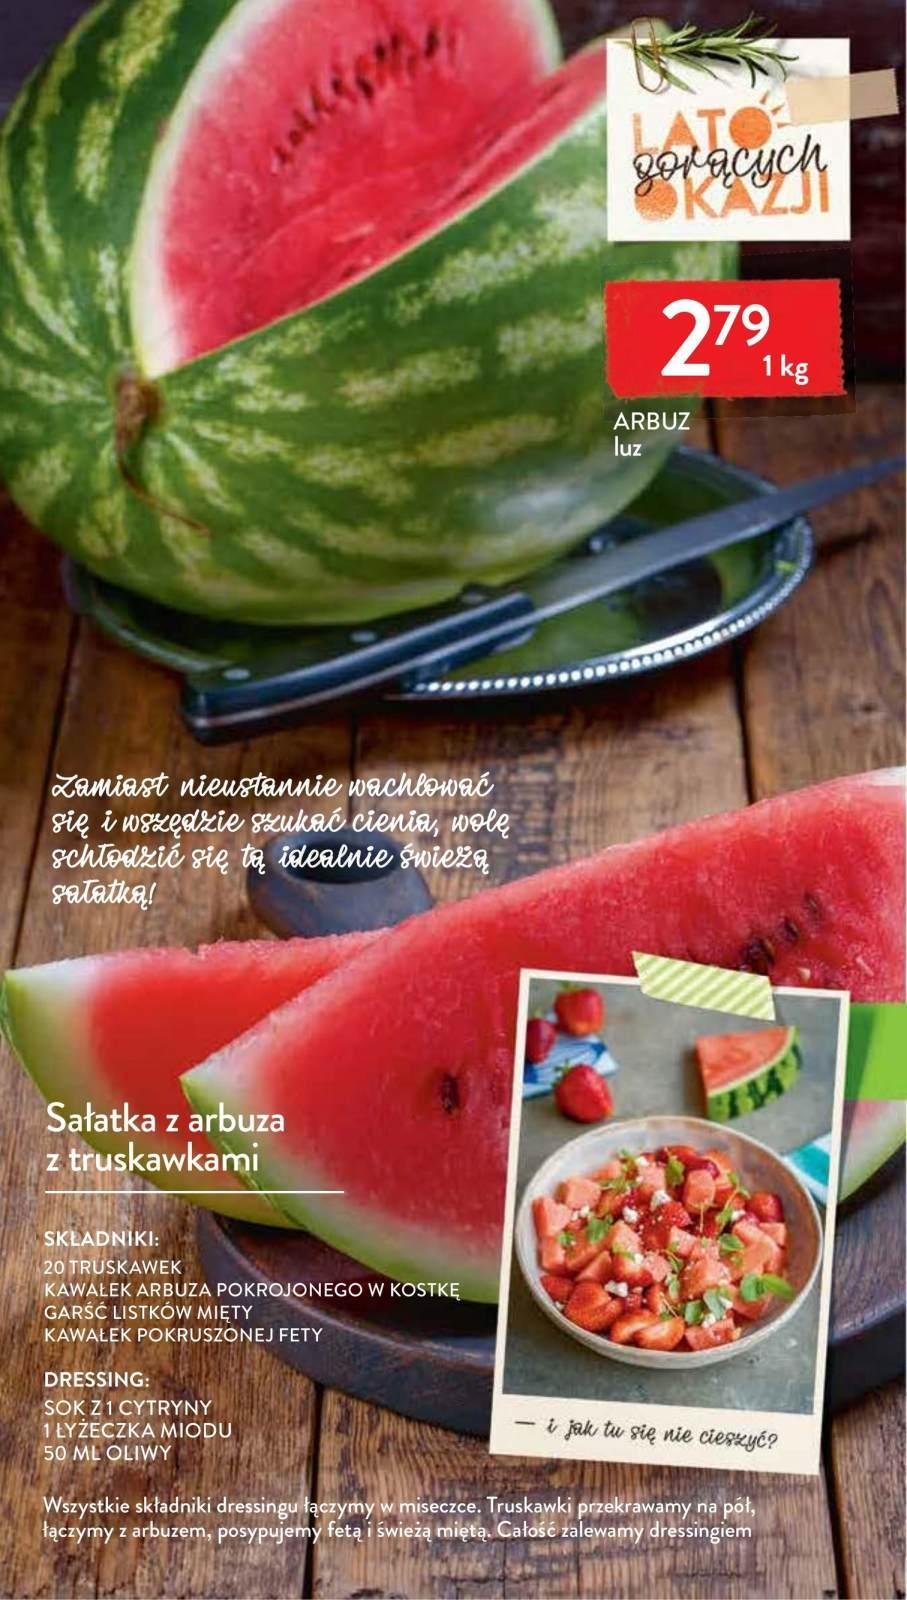 Gazetka promocyjna Intermarche do 24/06/2019 str.5